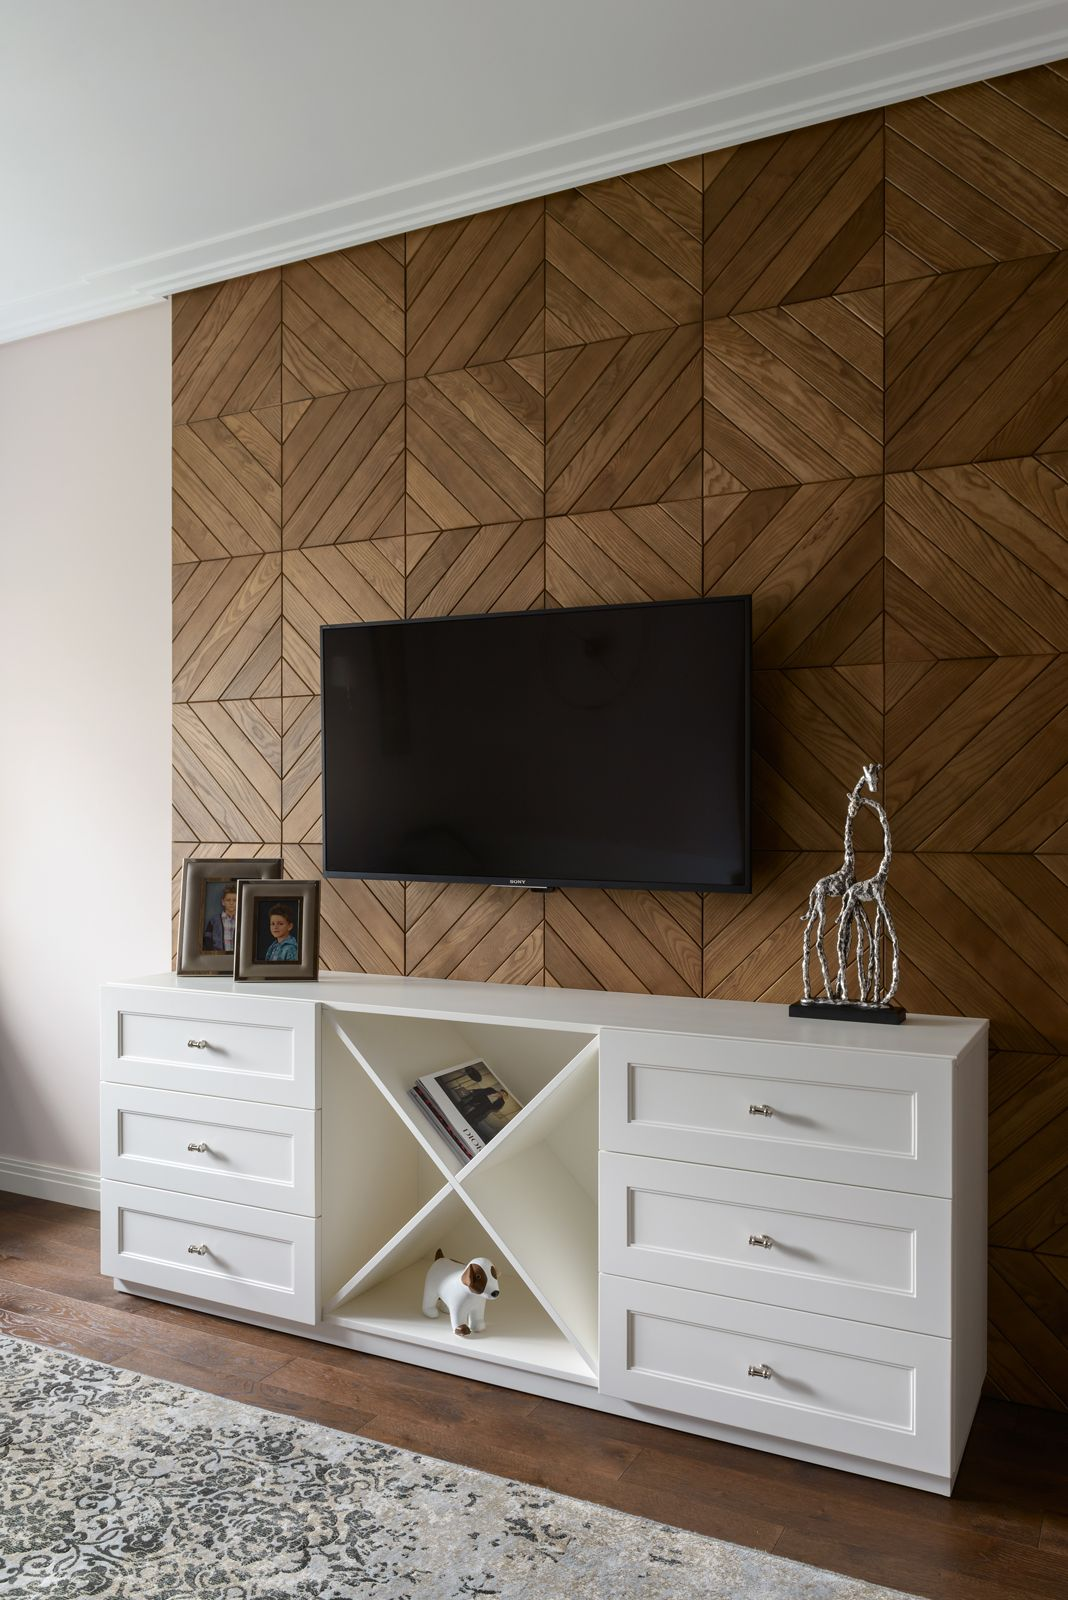 Decorating Living Room With Wooden Panels Panelling With Parquet